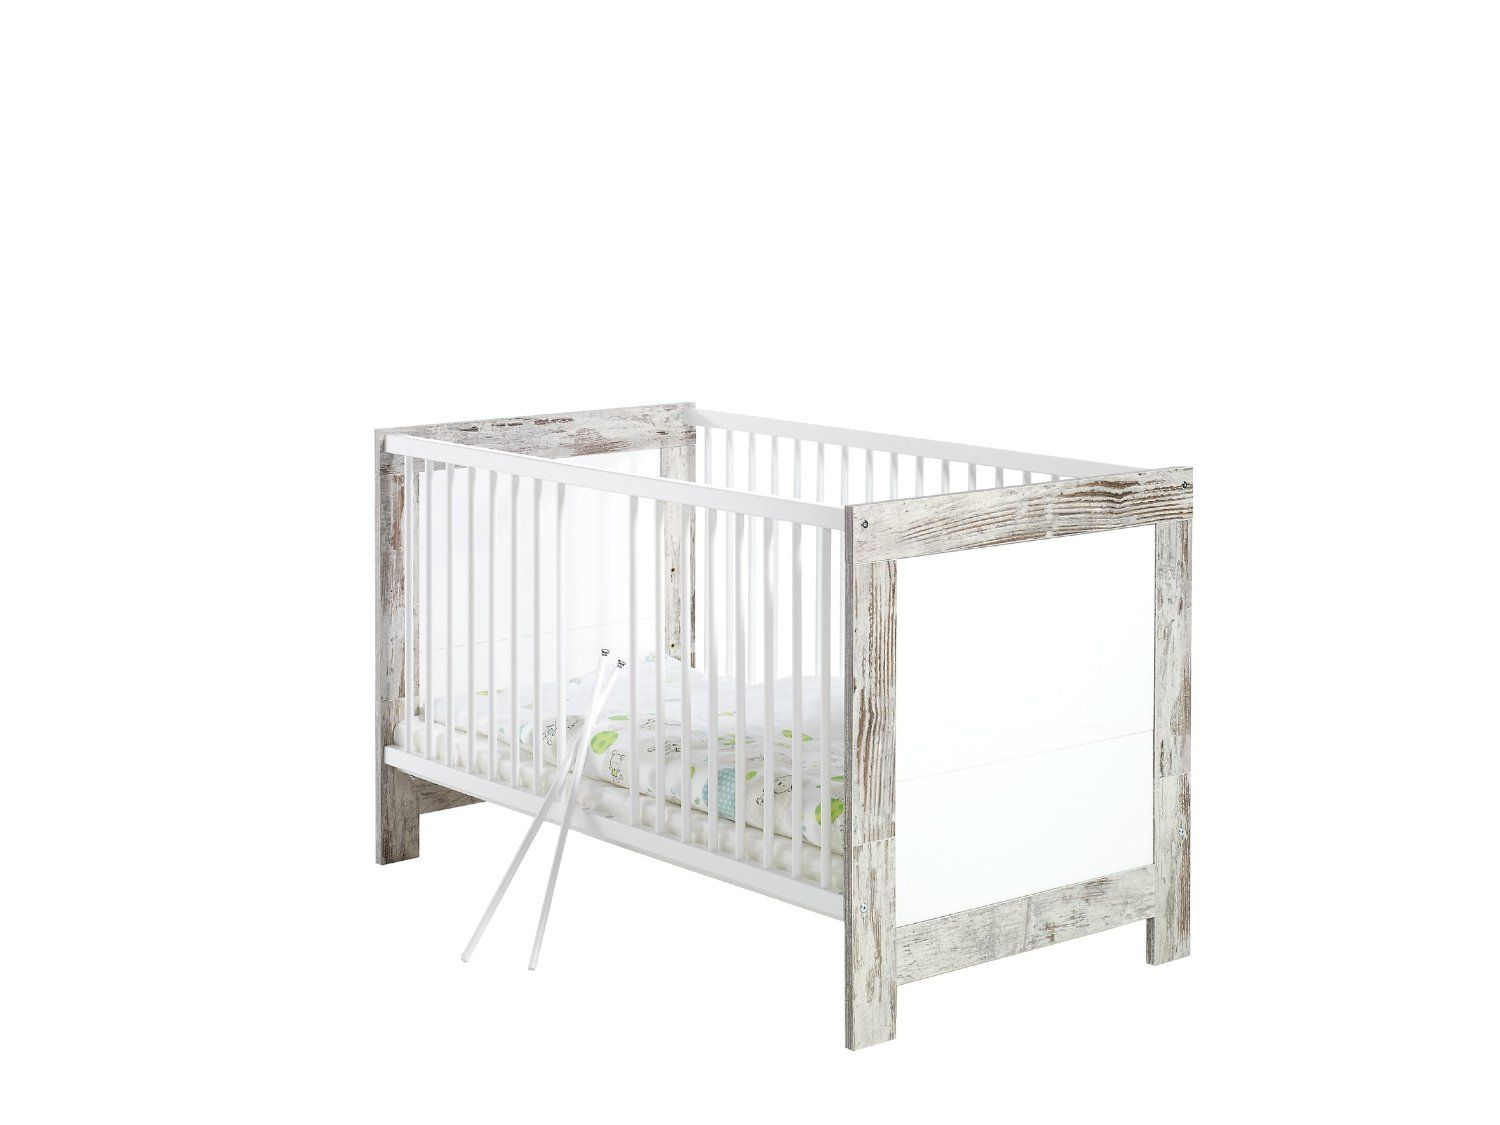 Schardt 70 x 140 cm Cot Nordic Chic: Amazon.co.uk: Baby